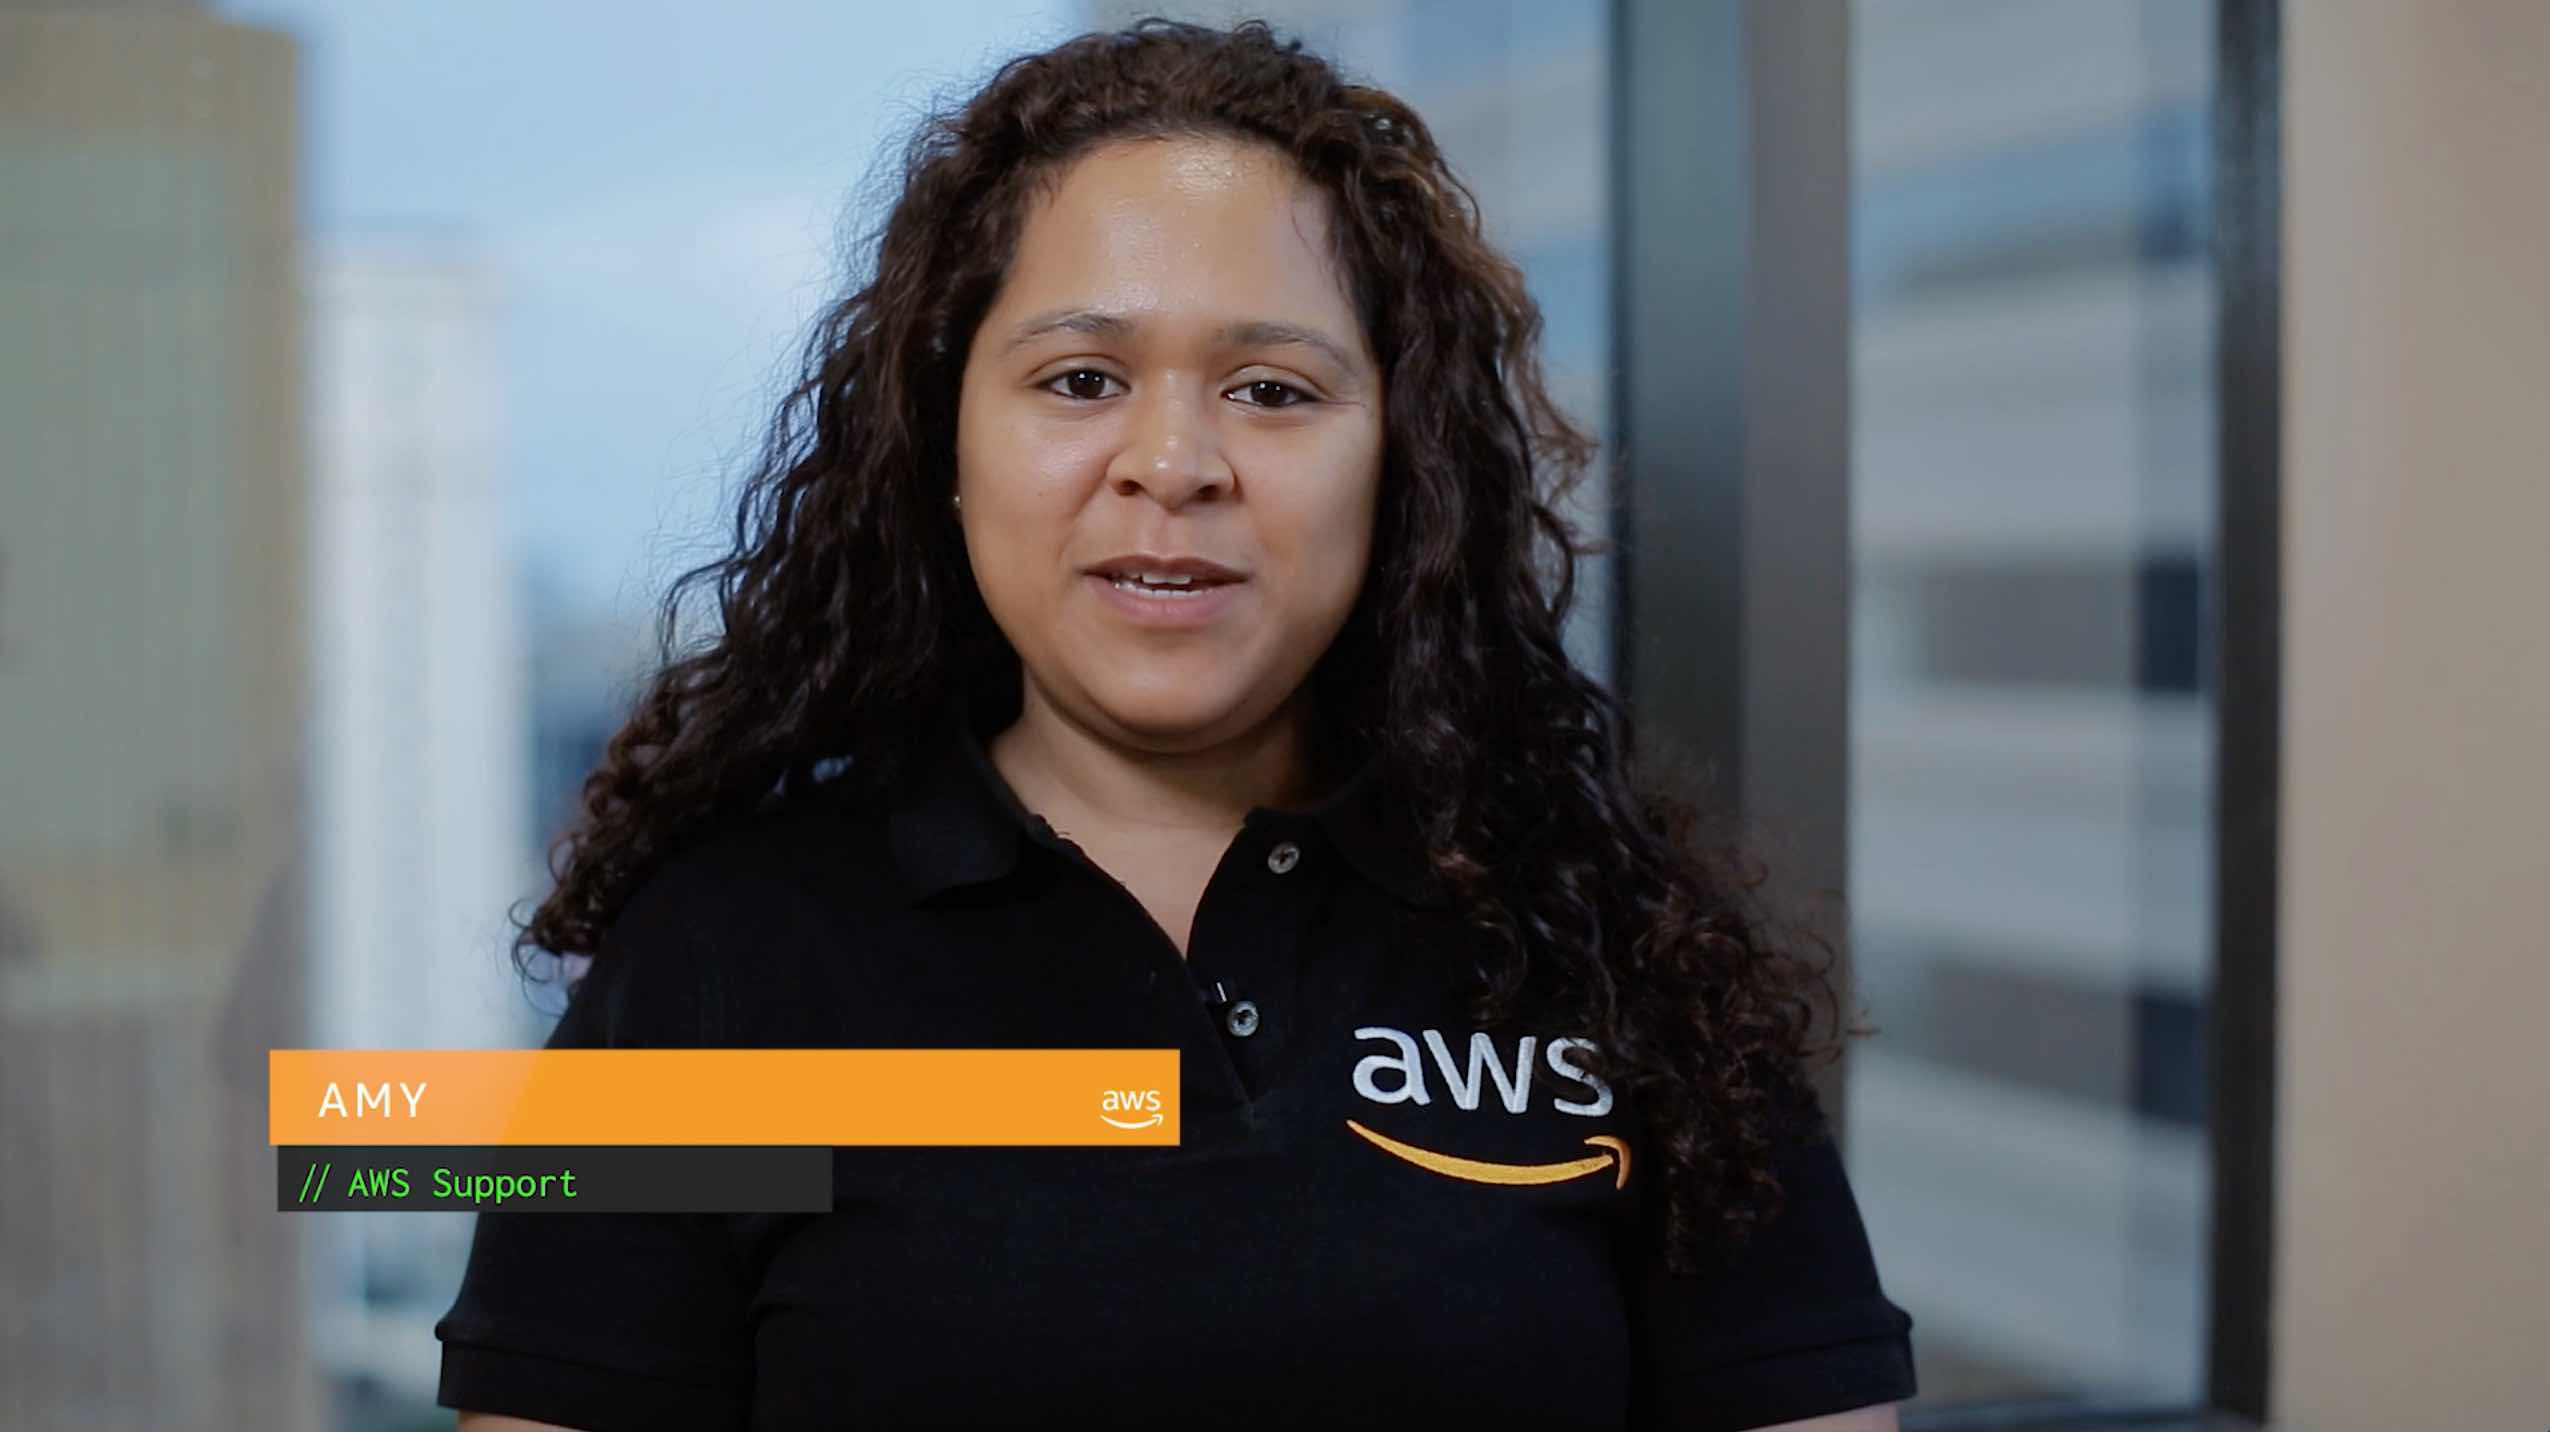 AWS Support – Knowledge Center